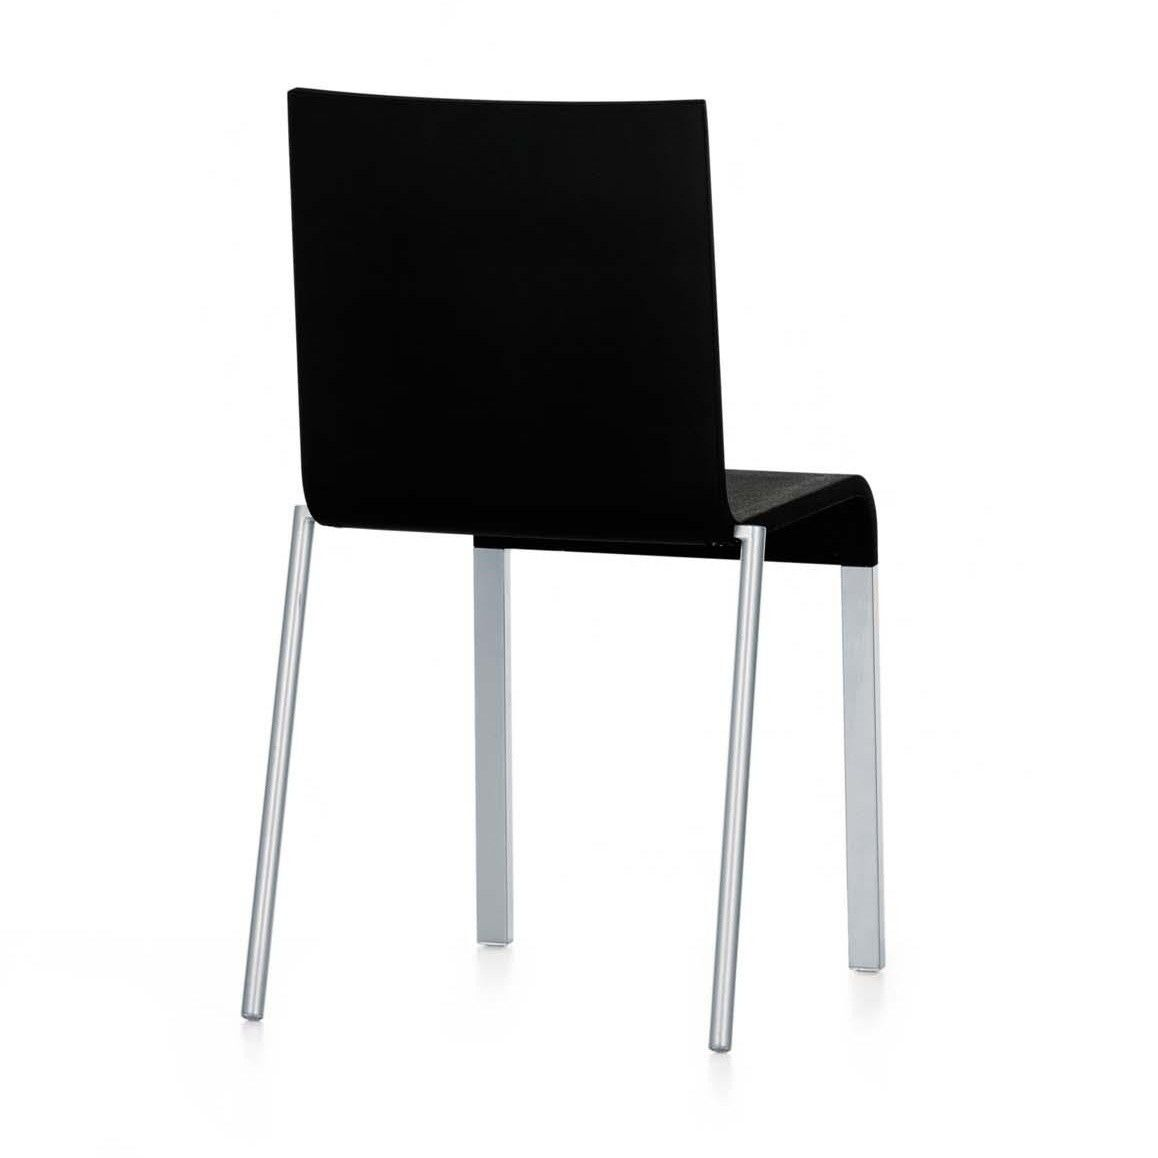 03 Chair stackable Vitra – Vitra 03 Chair